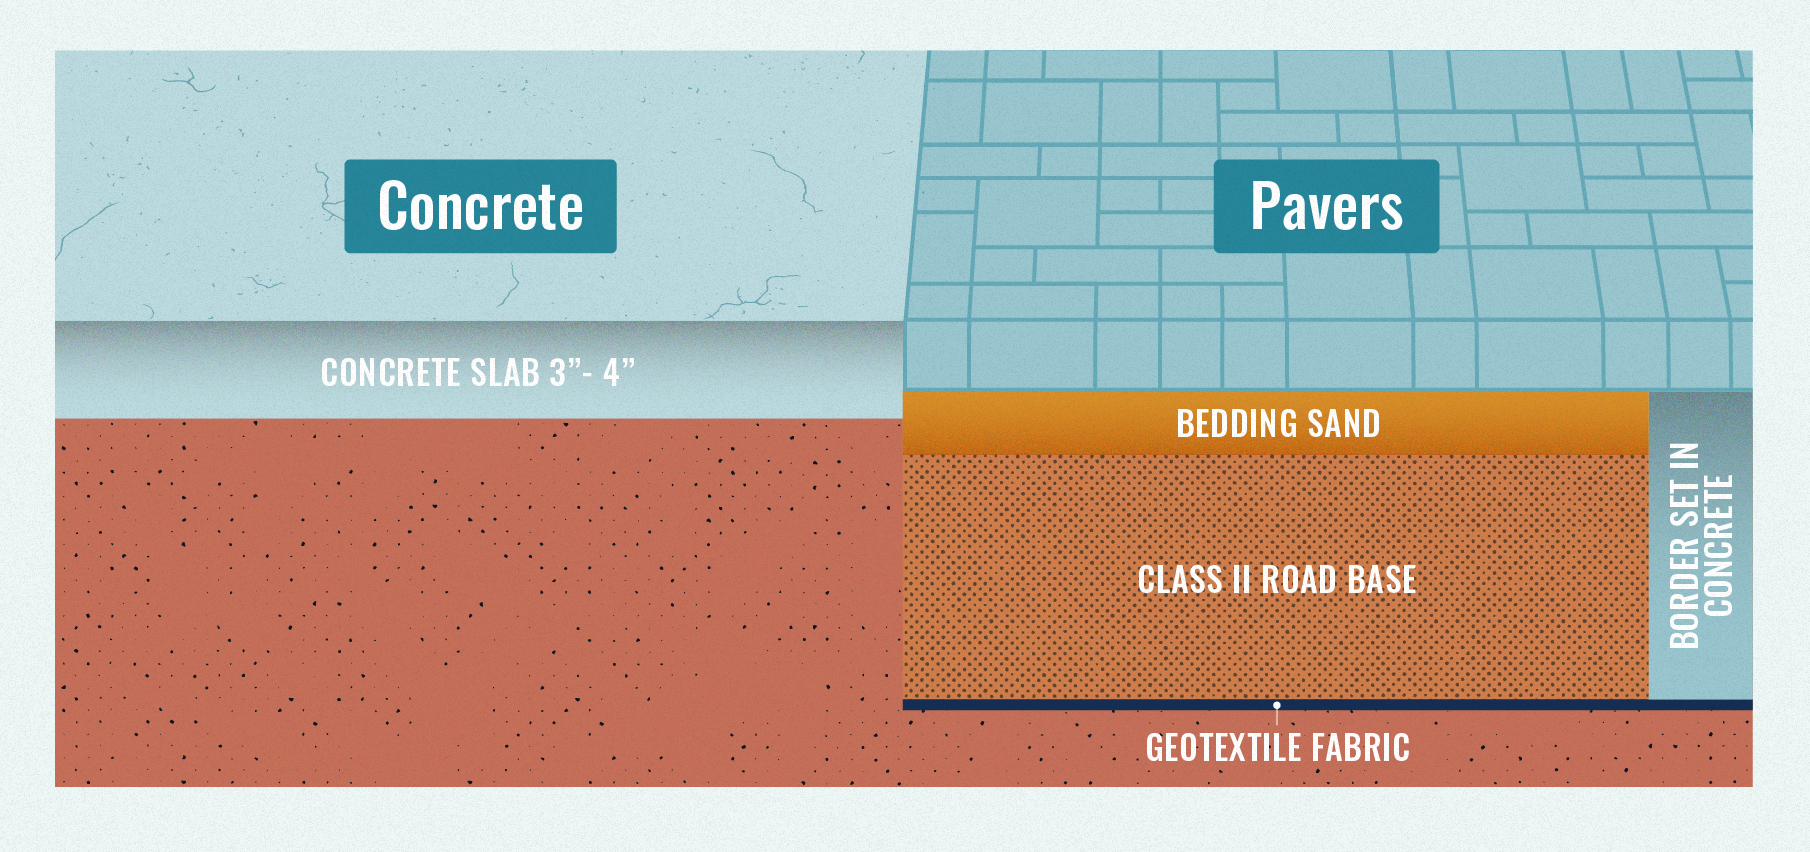 Pavers Vs Concrete Comparing Costs And Benefits Updated 2020